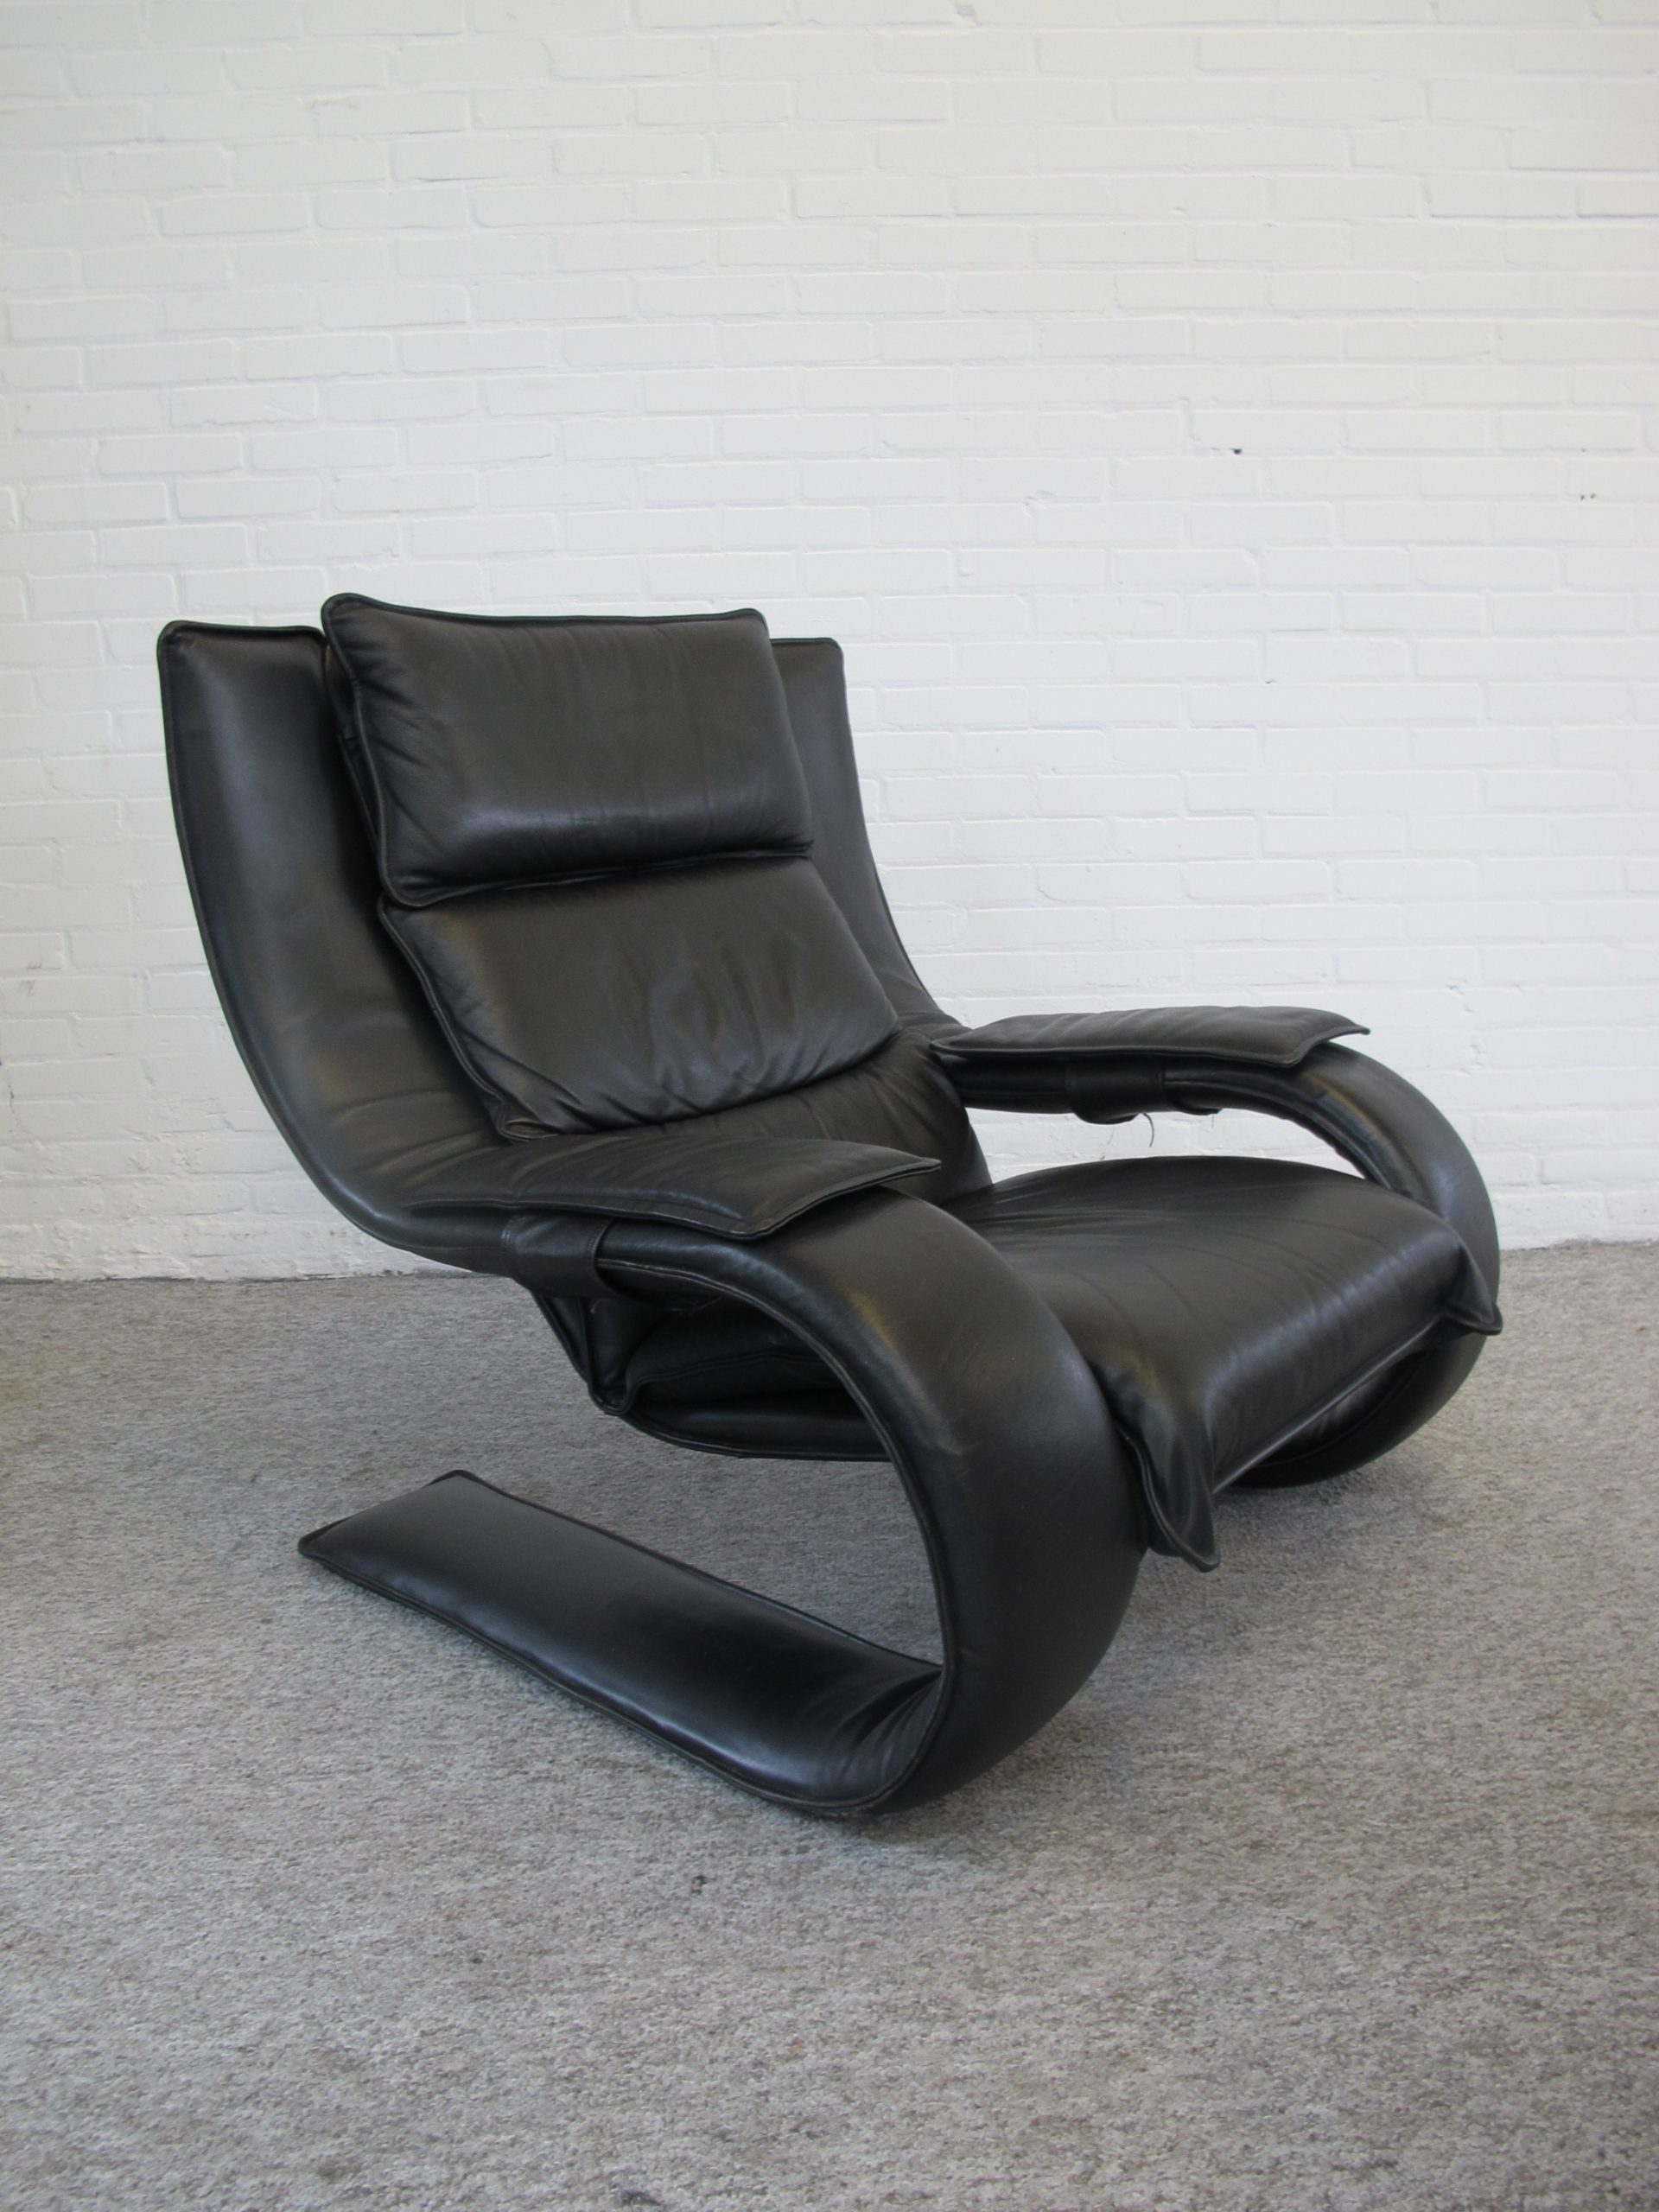 Fauteuil Percival Lafer lounge chair vintage midcentury